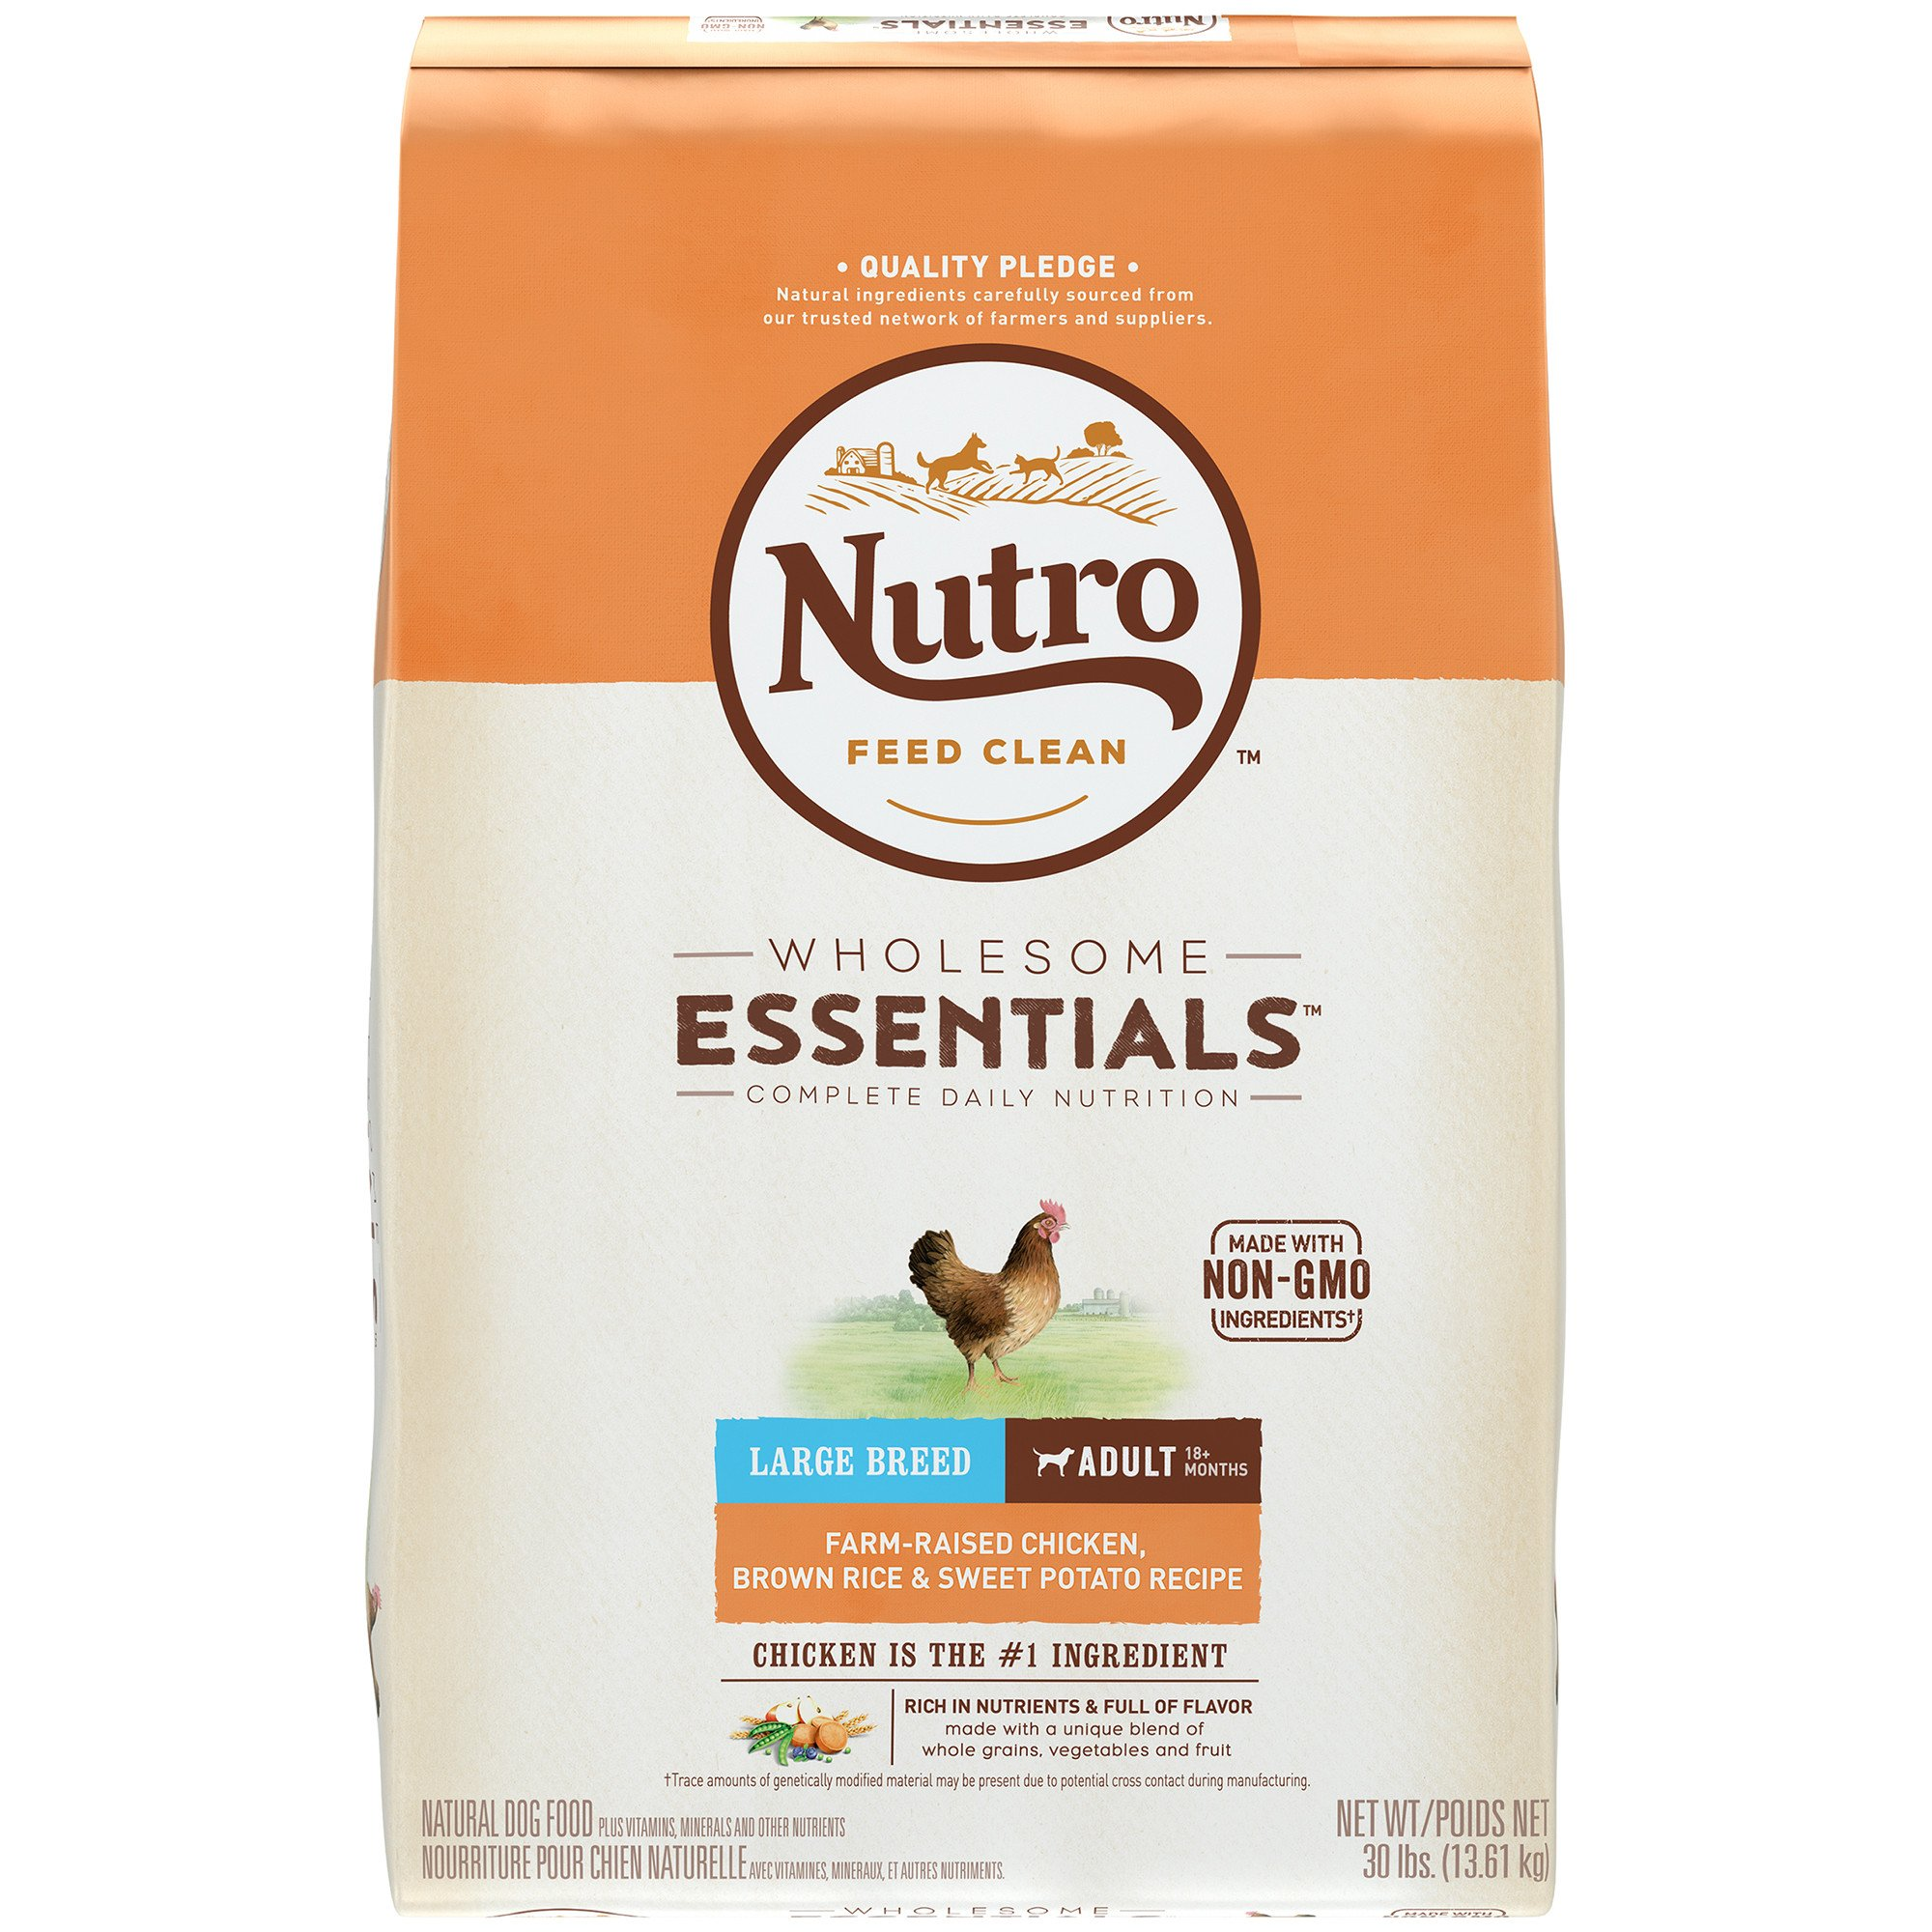 Nutro Wholesome Essentials Farm-Raised Chicken, Brown Rice & Sweet Potato Recipe Dry Large Breed Adult Dog Food, 30 lbs.